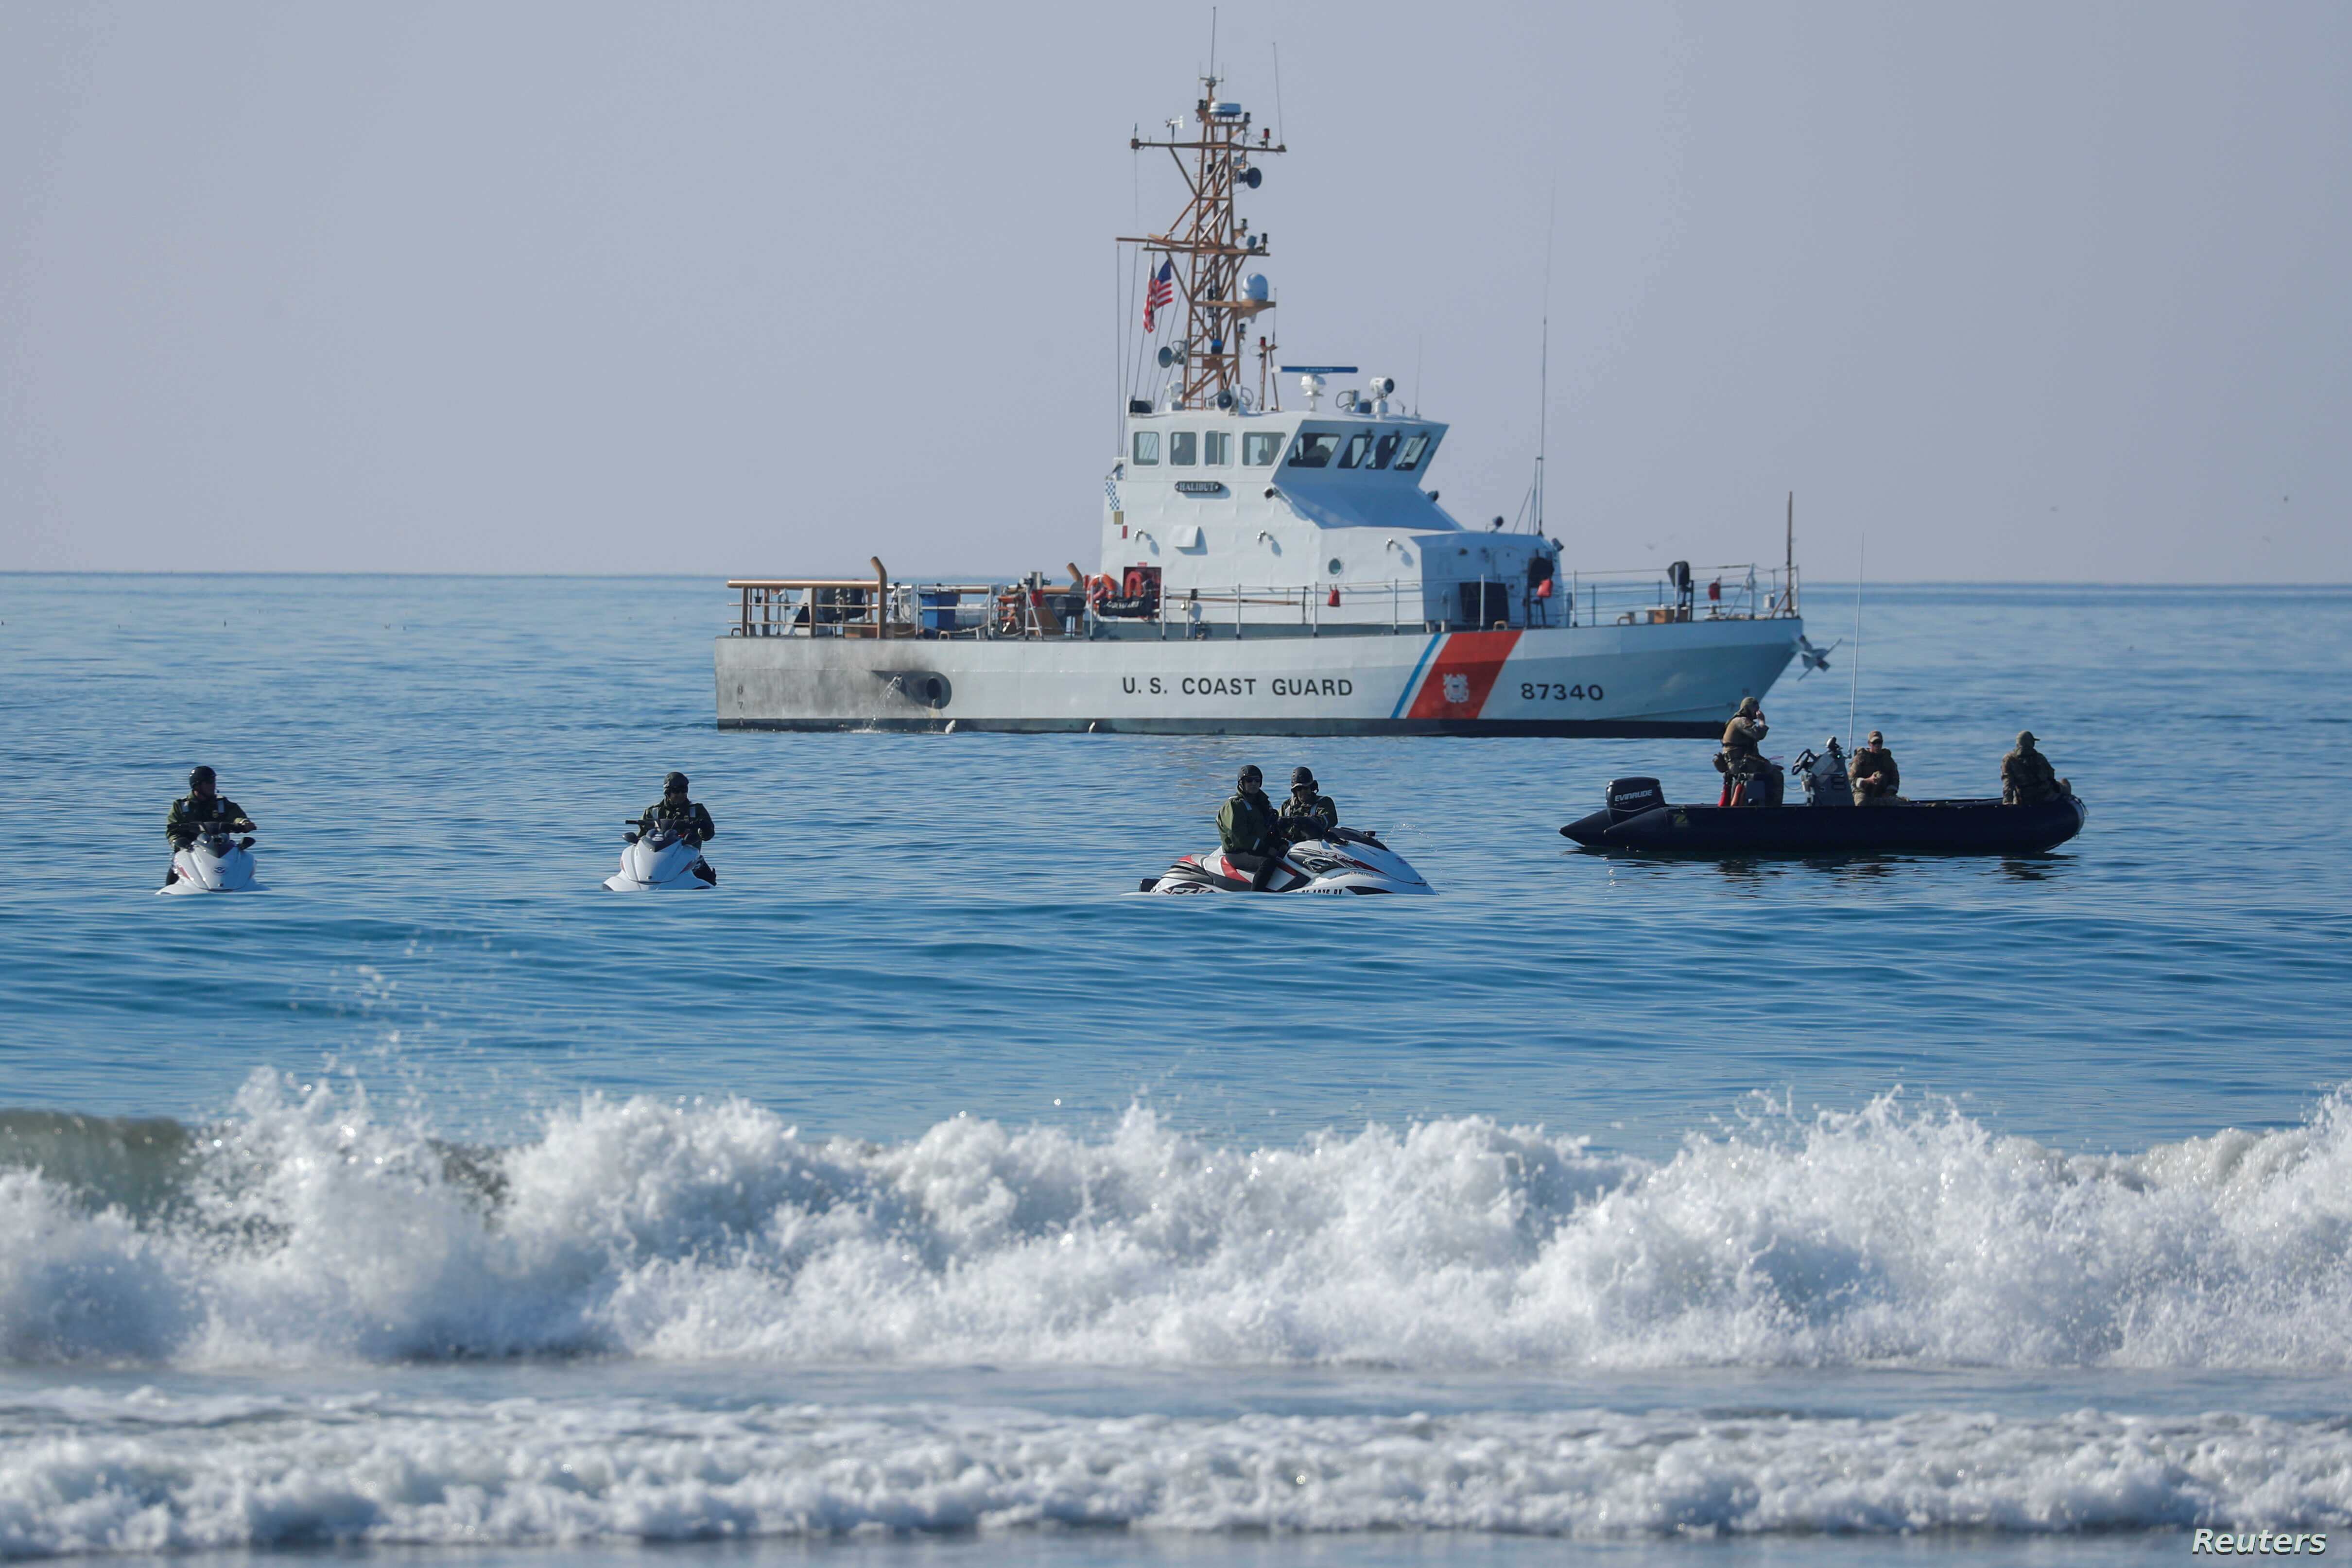 U.S. Border agents and the Coast Guard patrol the Pacific Ocean where the U.S. Mexico border wall enters the water at Border Field State Park in San Diego, California, Nov. 20, 2018.